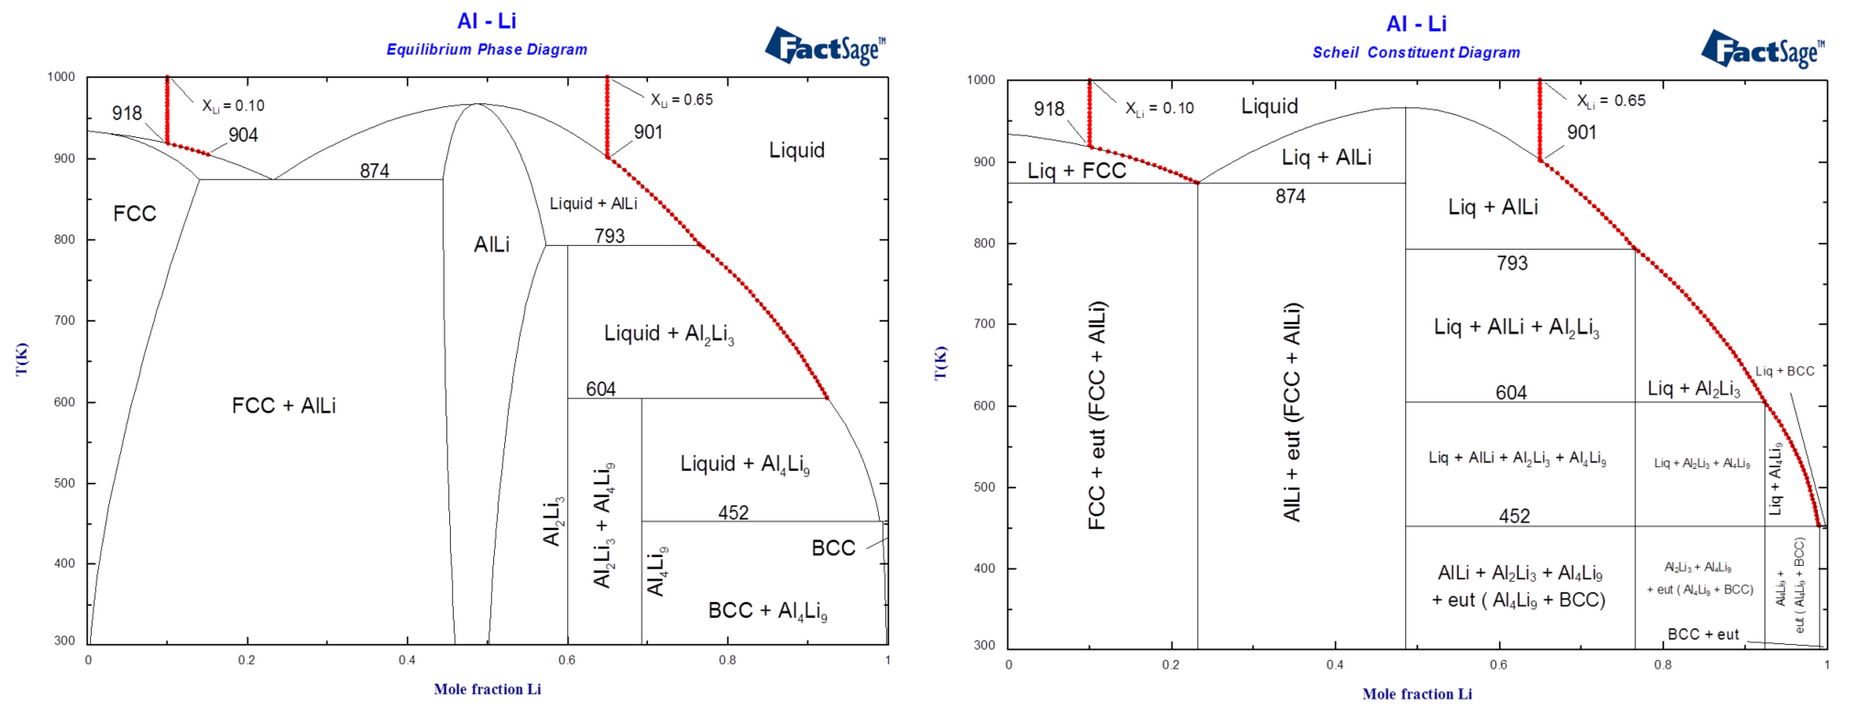 Whats New In Phase Diagram There Are 4 Diagrams Depending On Which System You Have I Of The Al Li Illustrating Solidification Alloys Compositions Xli 010 And 065 1 Calculated Equilibrium